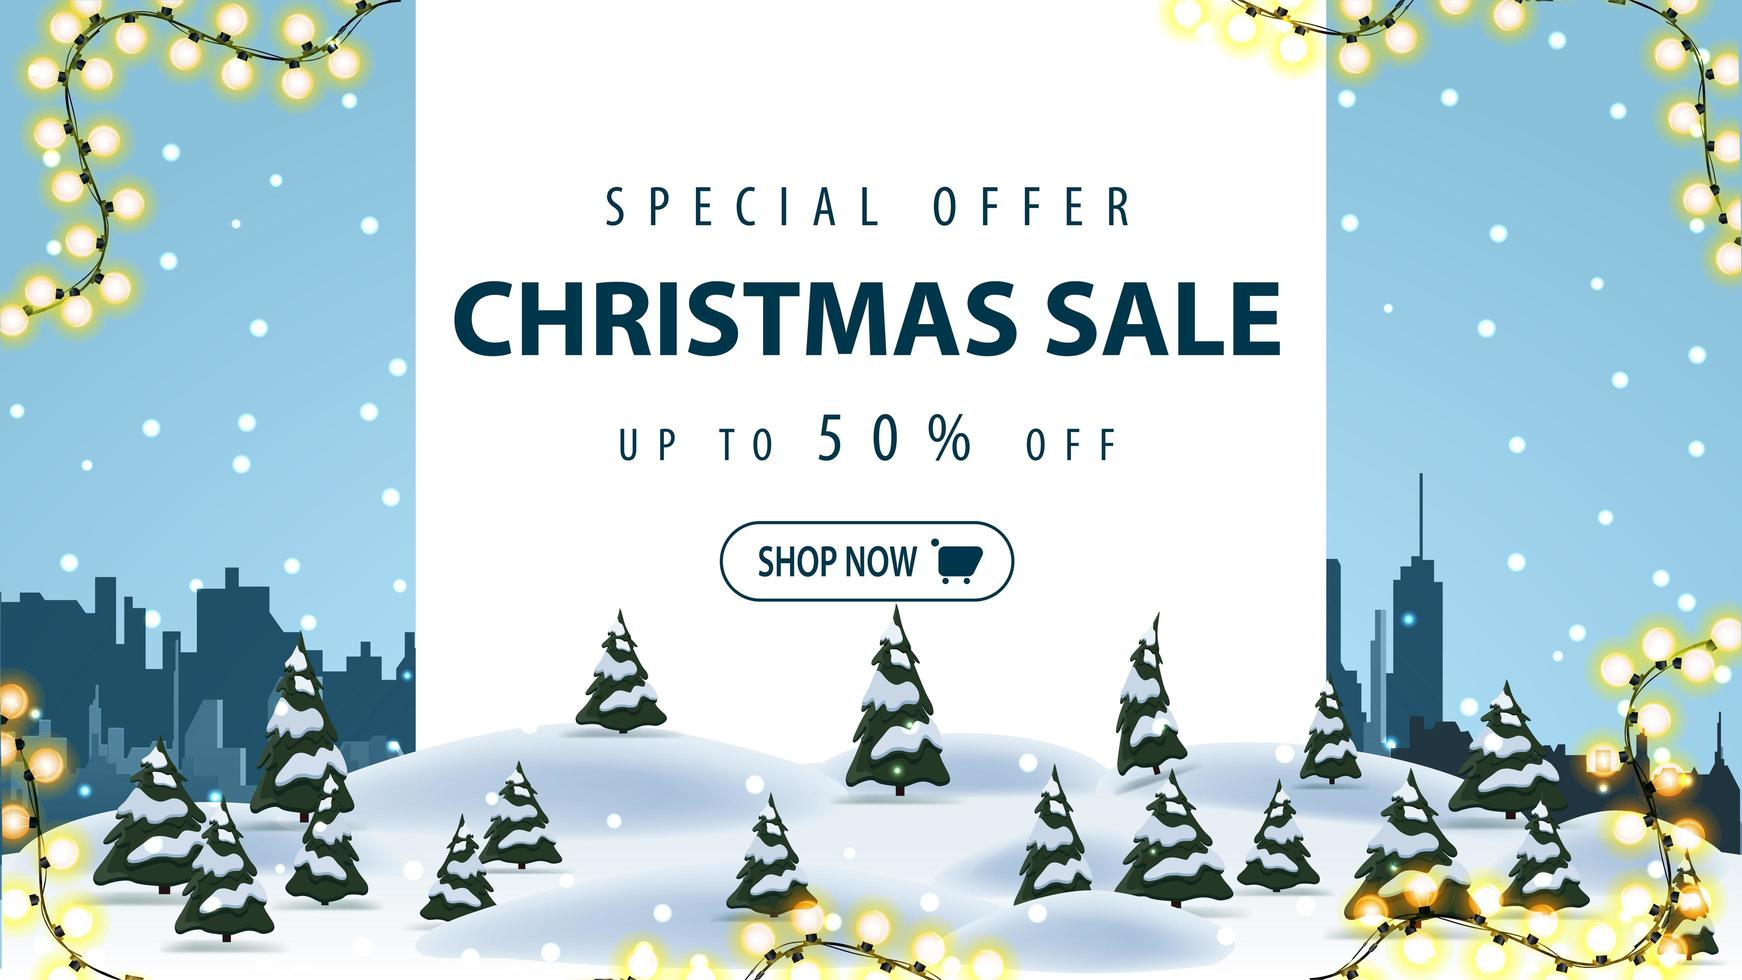 Special offer, Christmas sale, up to 50 off, discount banner with winter landscape and silhouette city on background vector